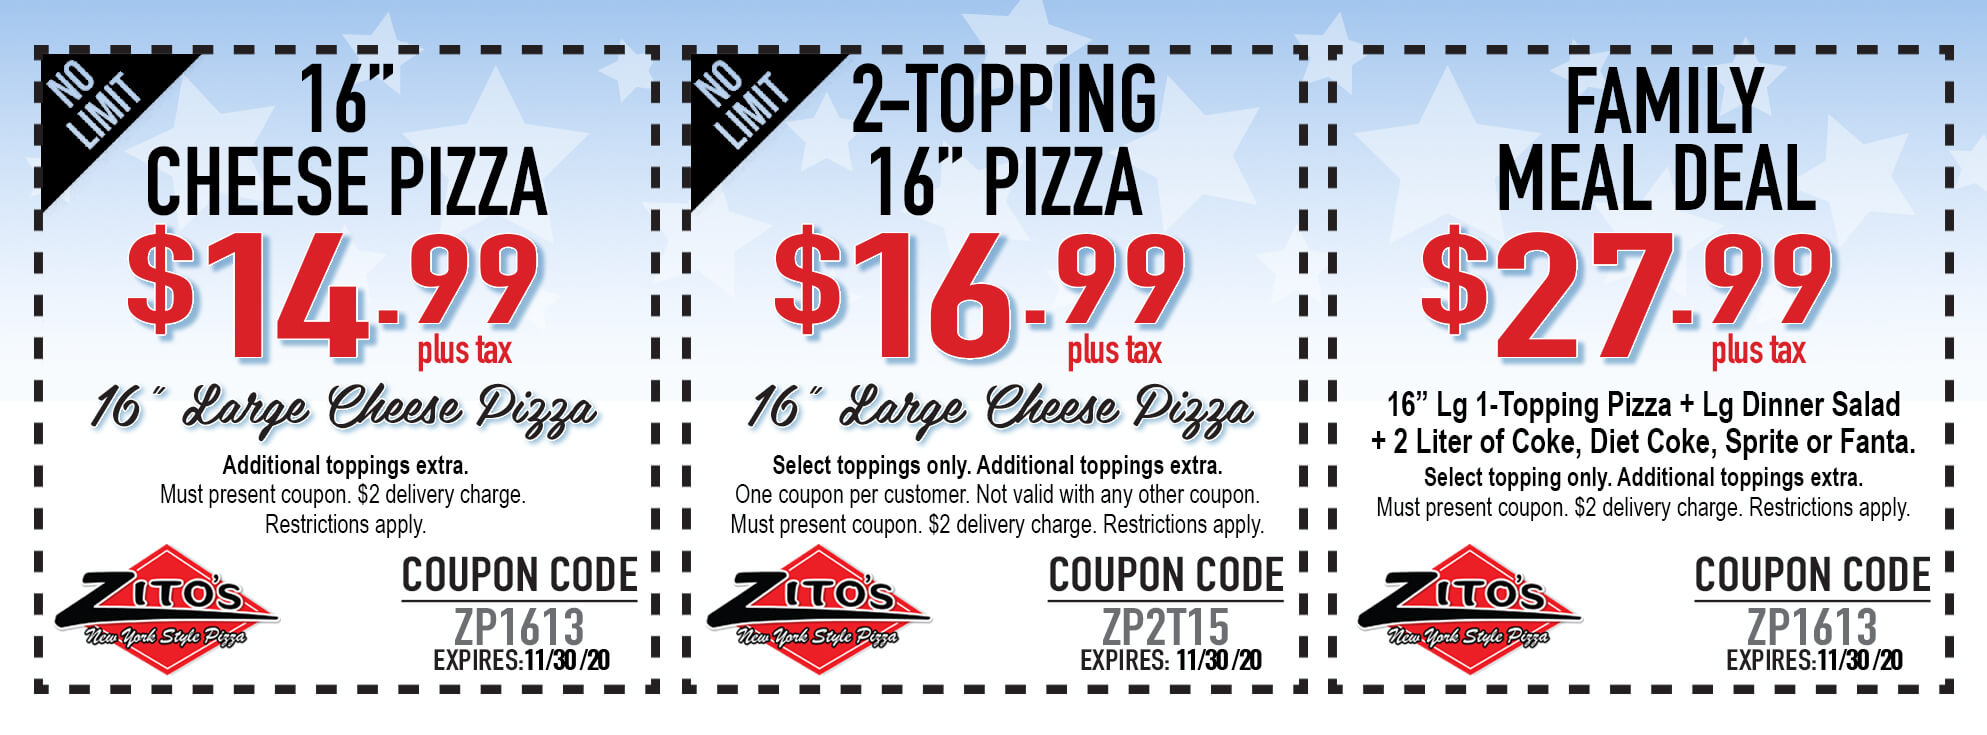 zitos-september-coupon-trio